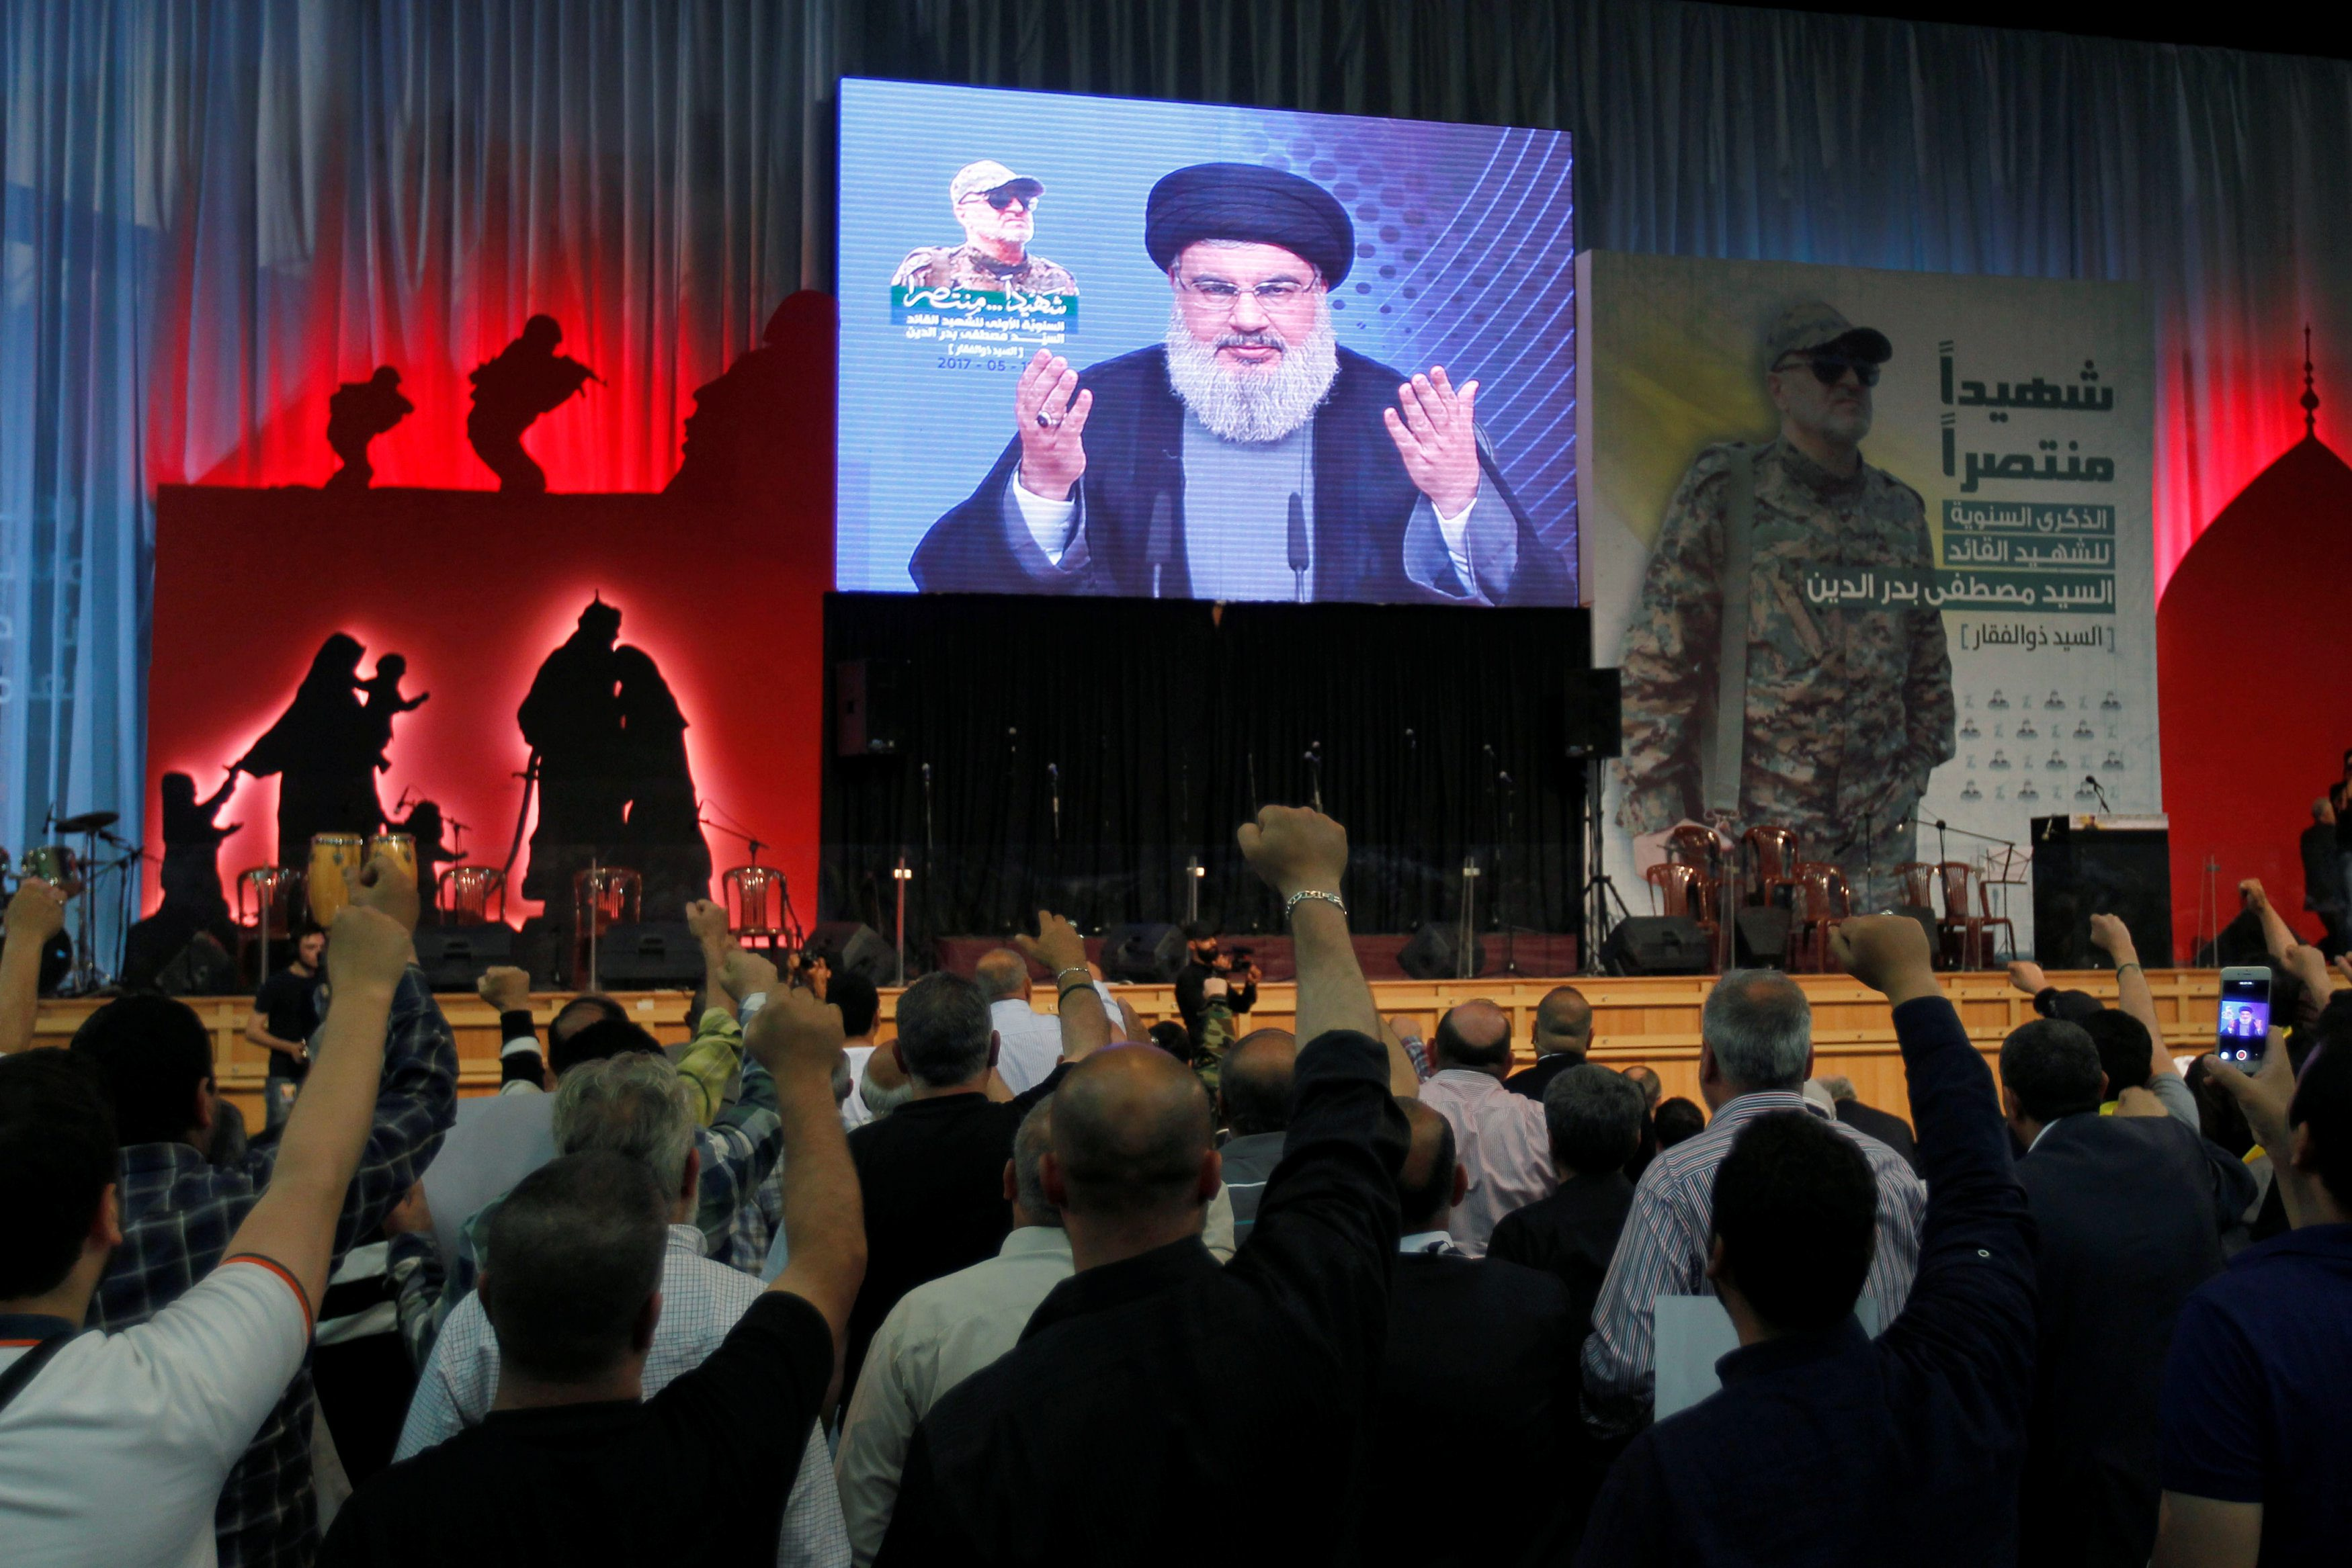 2017-05-11T165709Z_219315731_RC1341248610_RTRMADP_3_MIDEAST-CRISIS-HEZBOLLAH